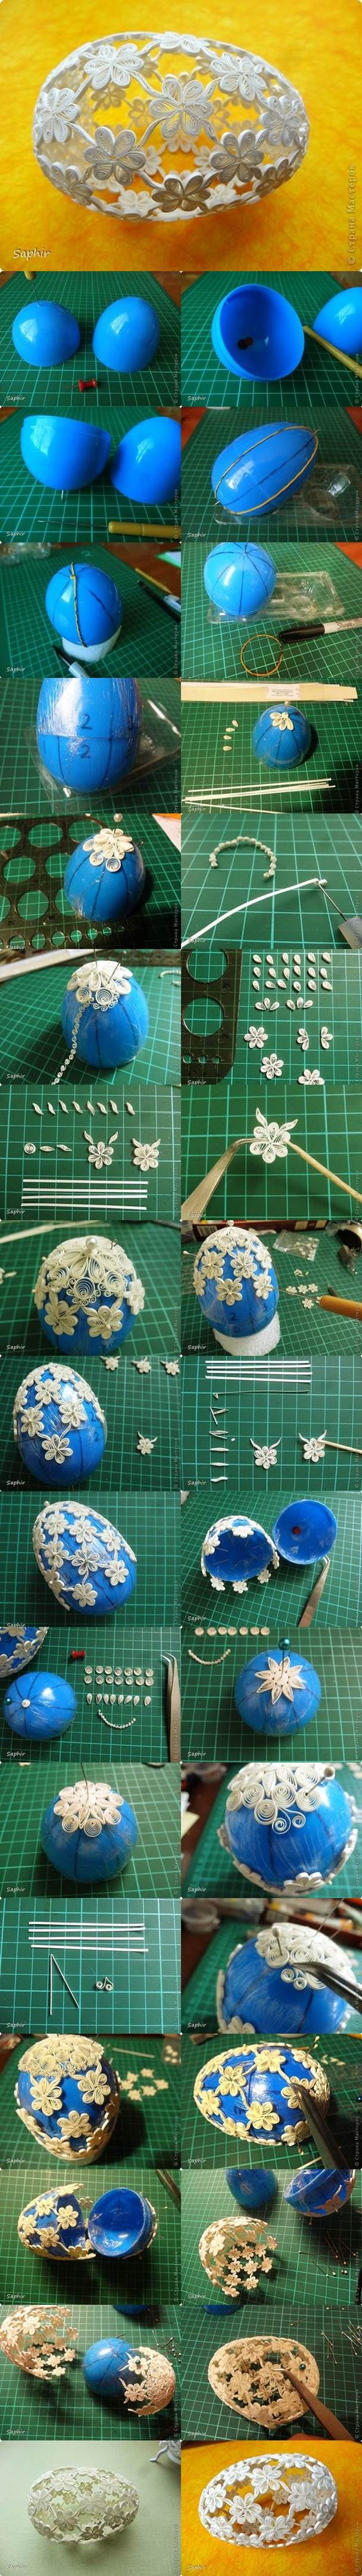 DIY Quilling Flowers Easter Egg | iCreativeIdeas.com Follow Us on Facebook --> https://www.facebook.com/icreativeideas